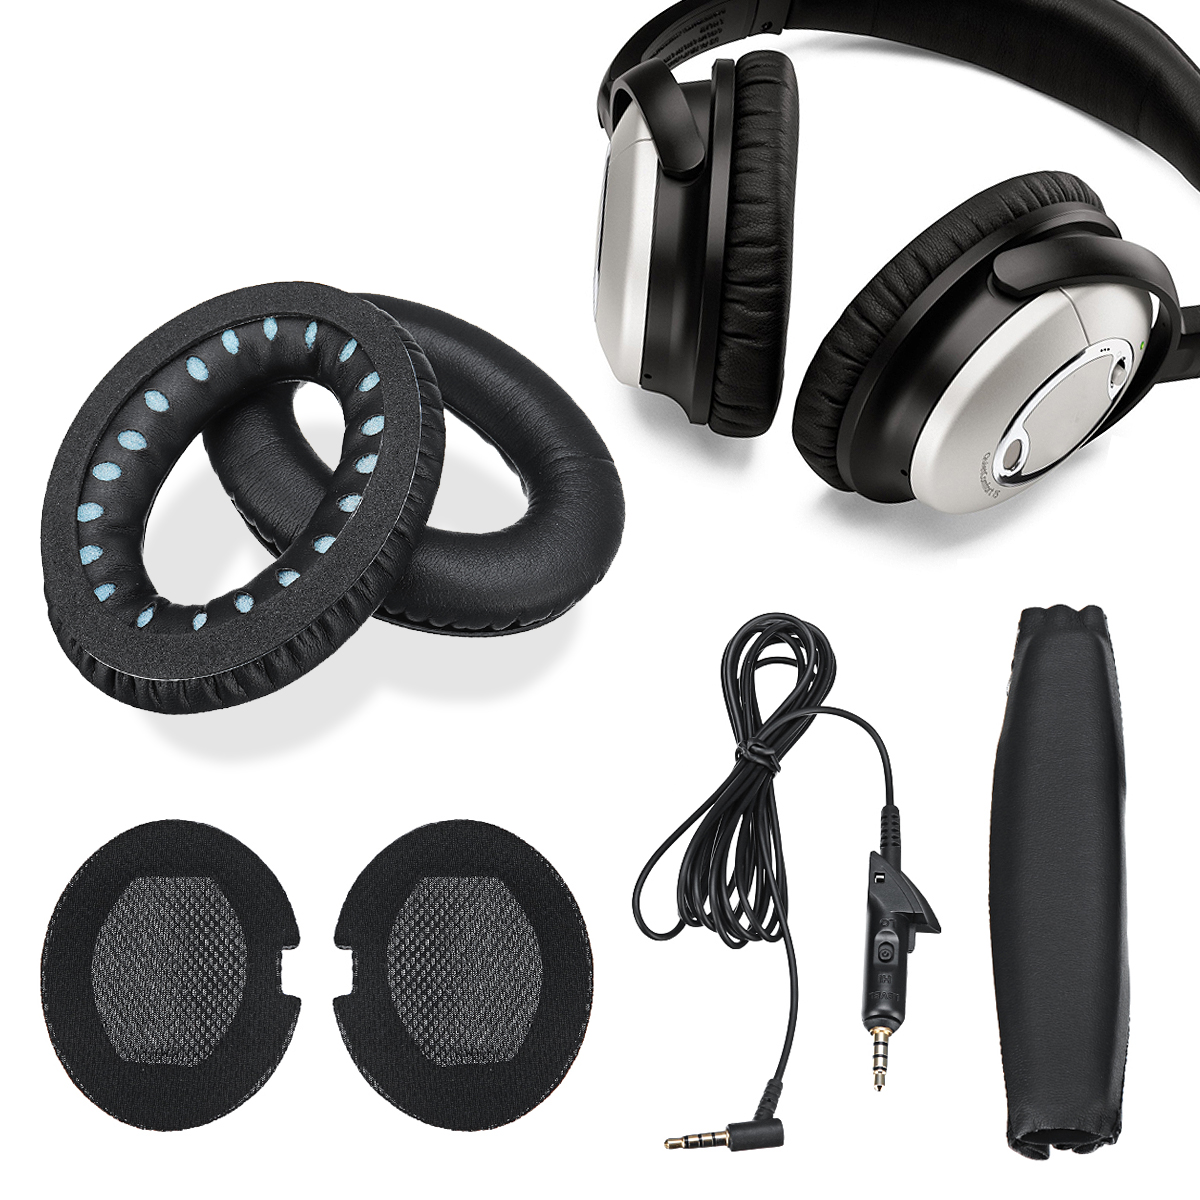 Replacement Ear Pads Headband Set 5.5 FT Audio Cable Ear Pad Cushions Ear Cups For Quiet Comfort QC15 Black